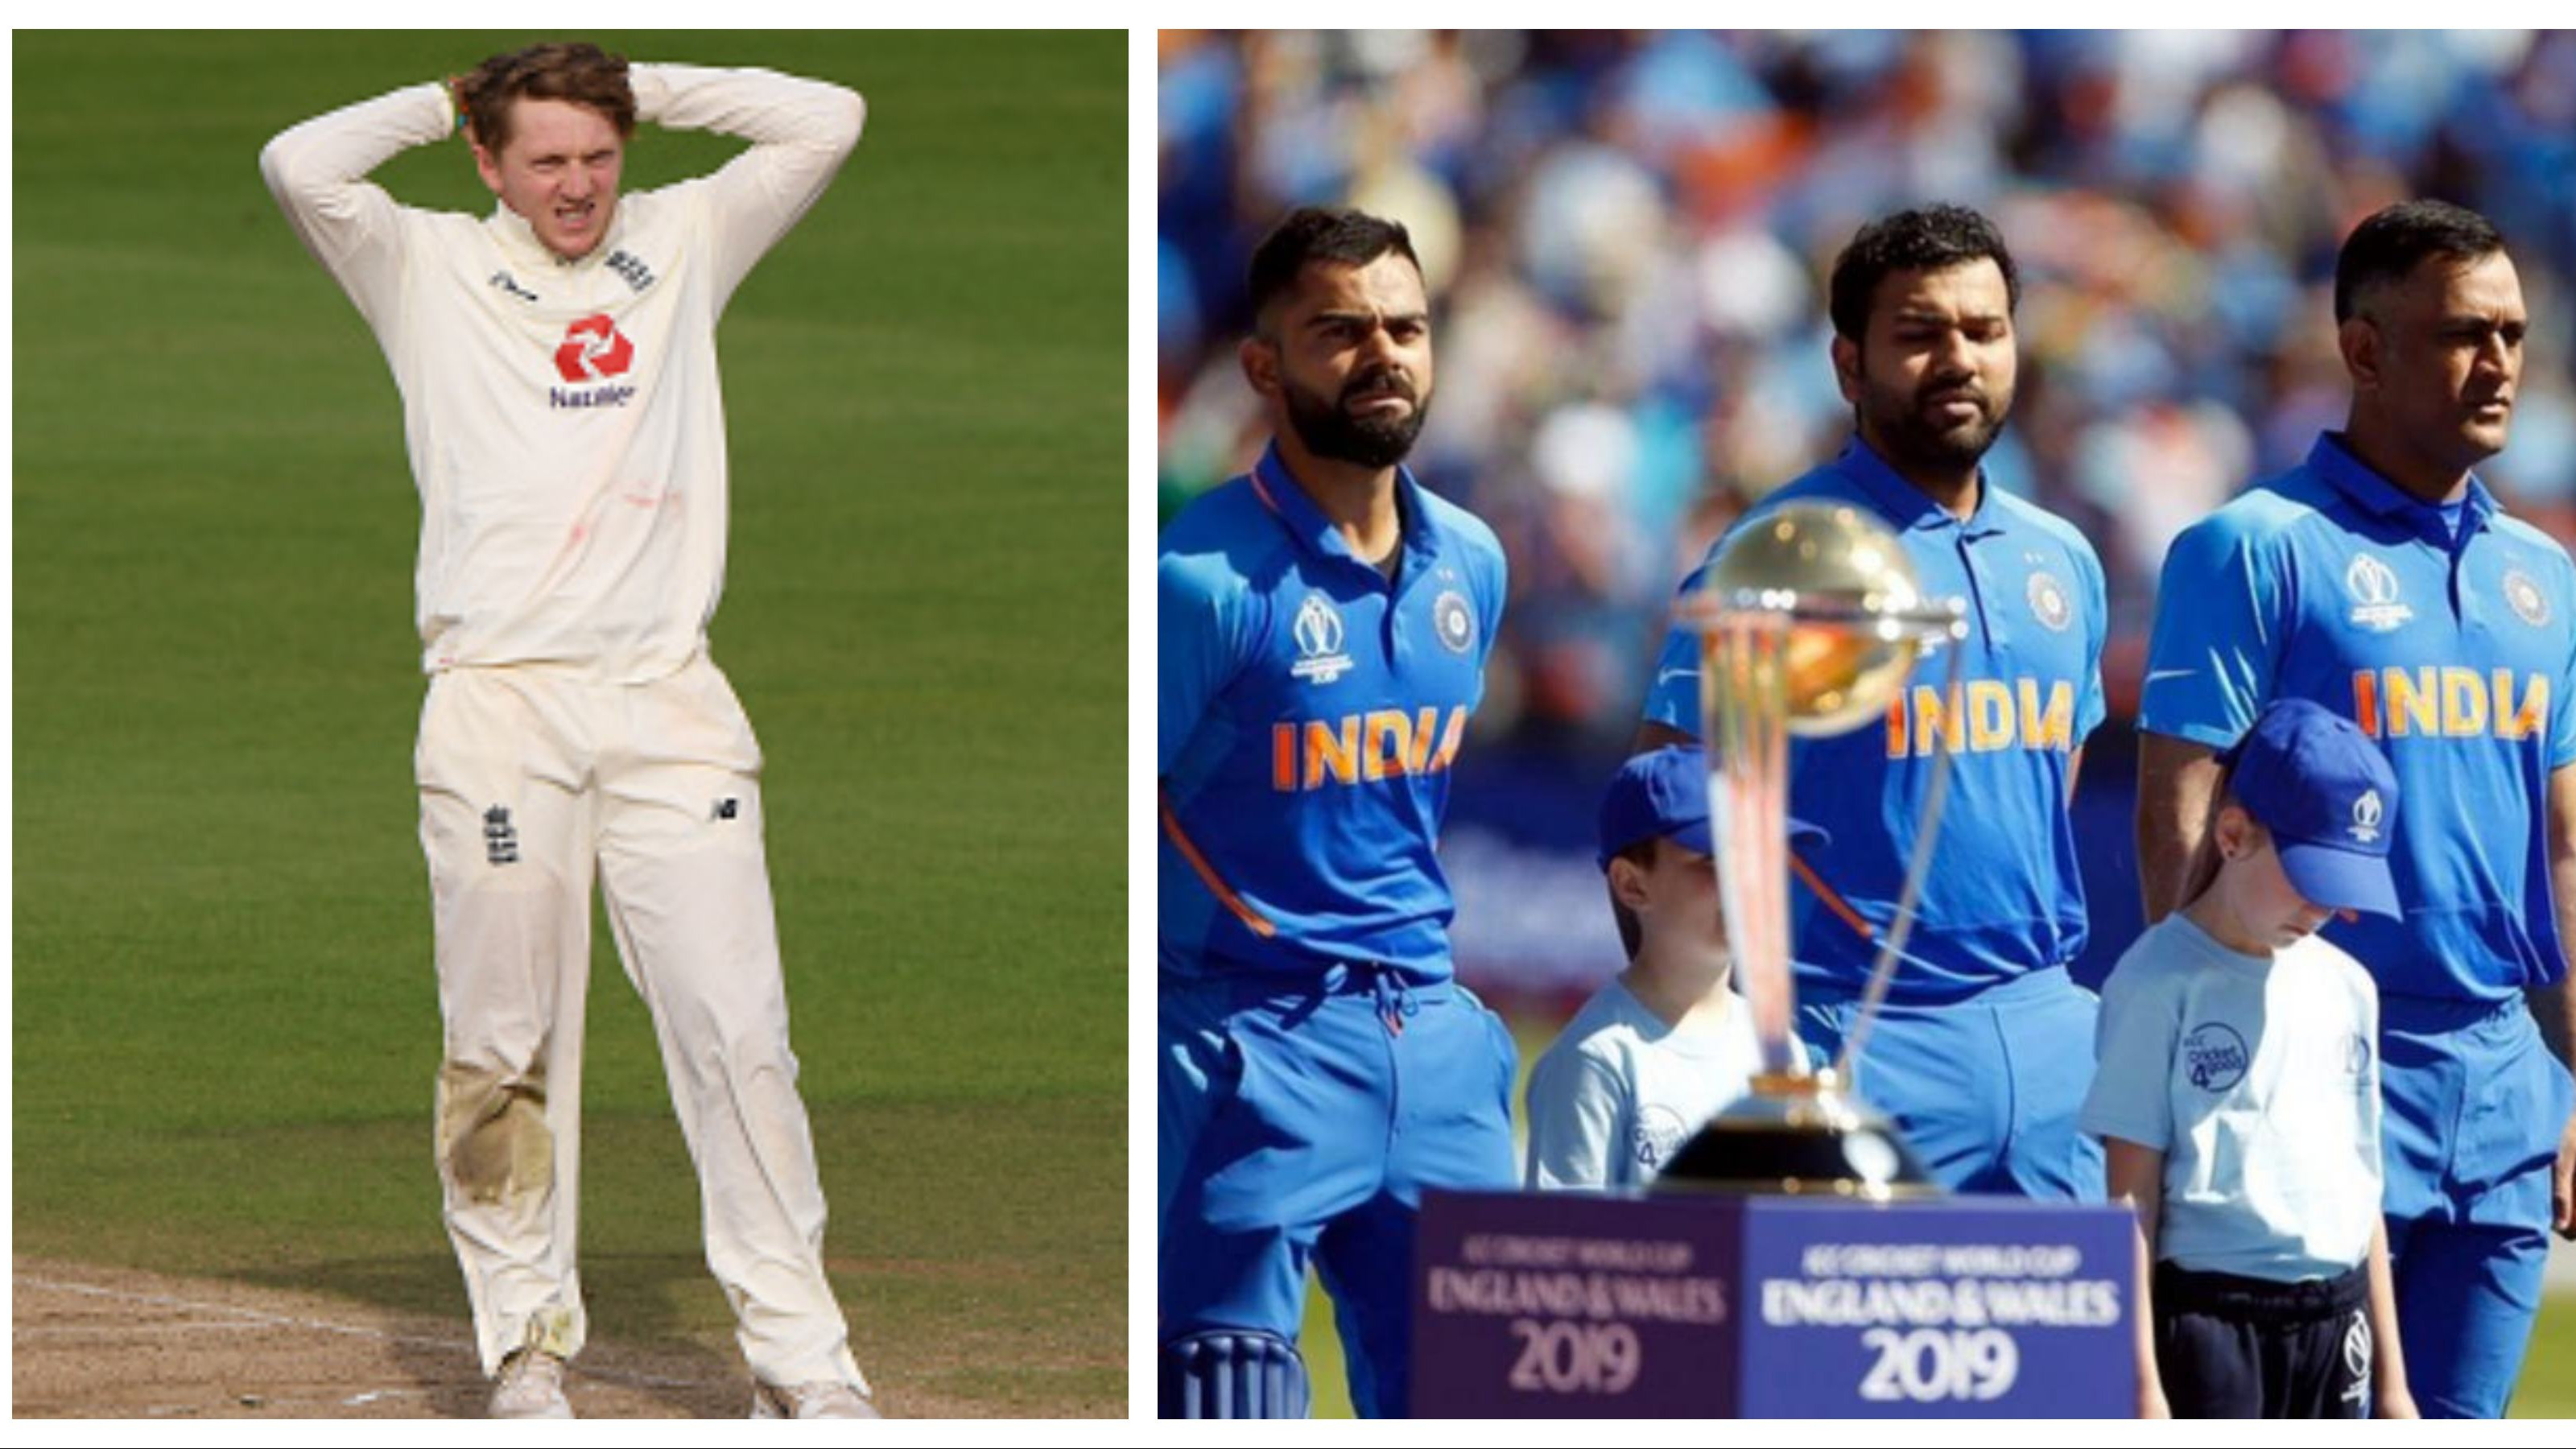 Dom Bess under scanner as his old posts mocking India's national anthem and MS Dhoni resurface